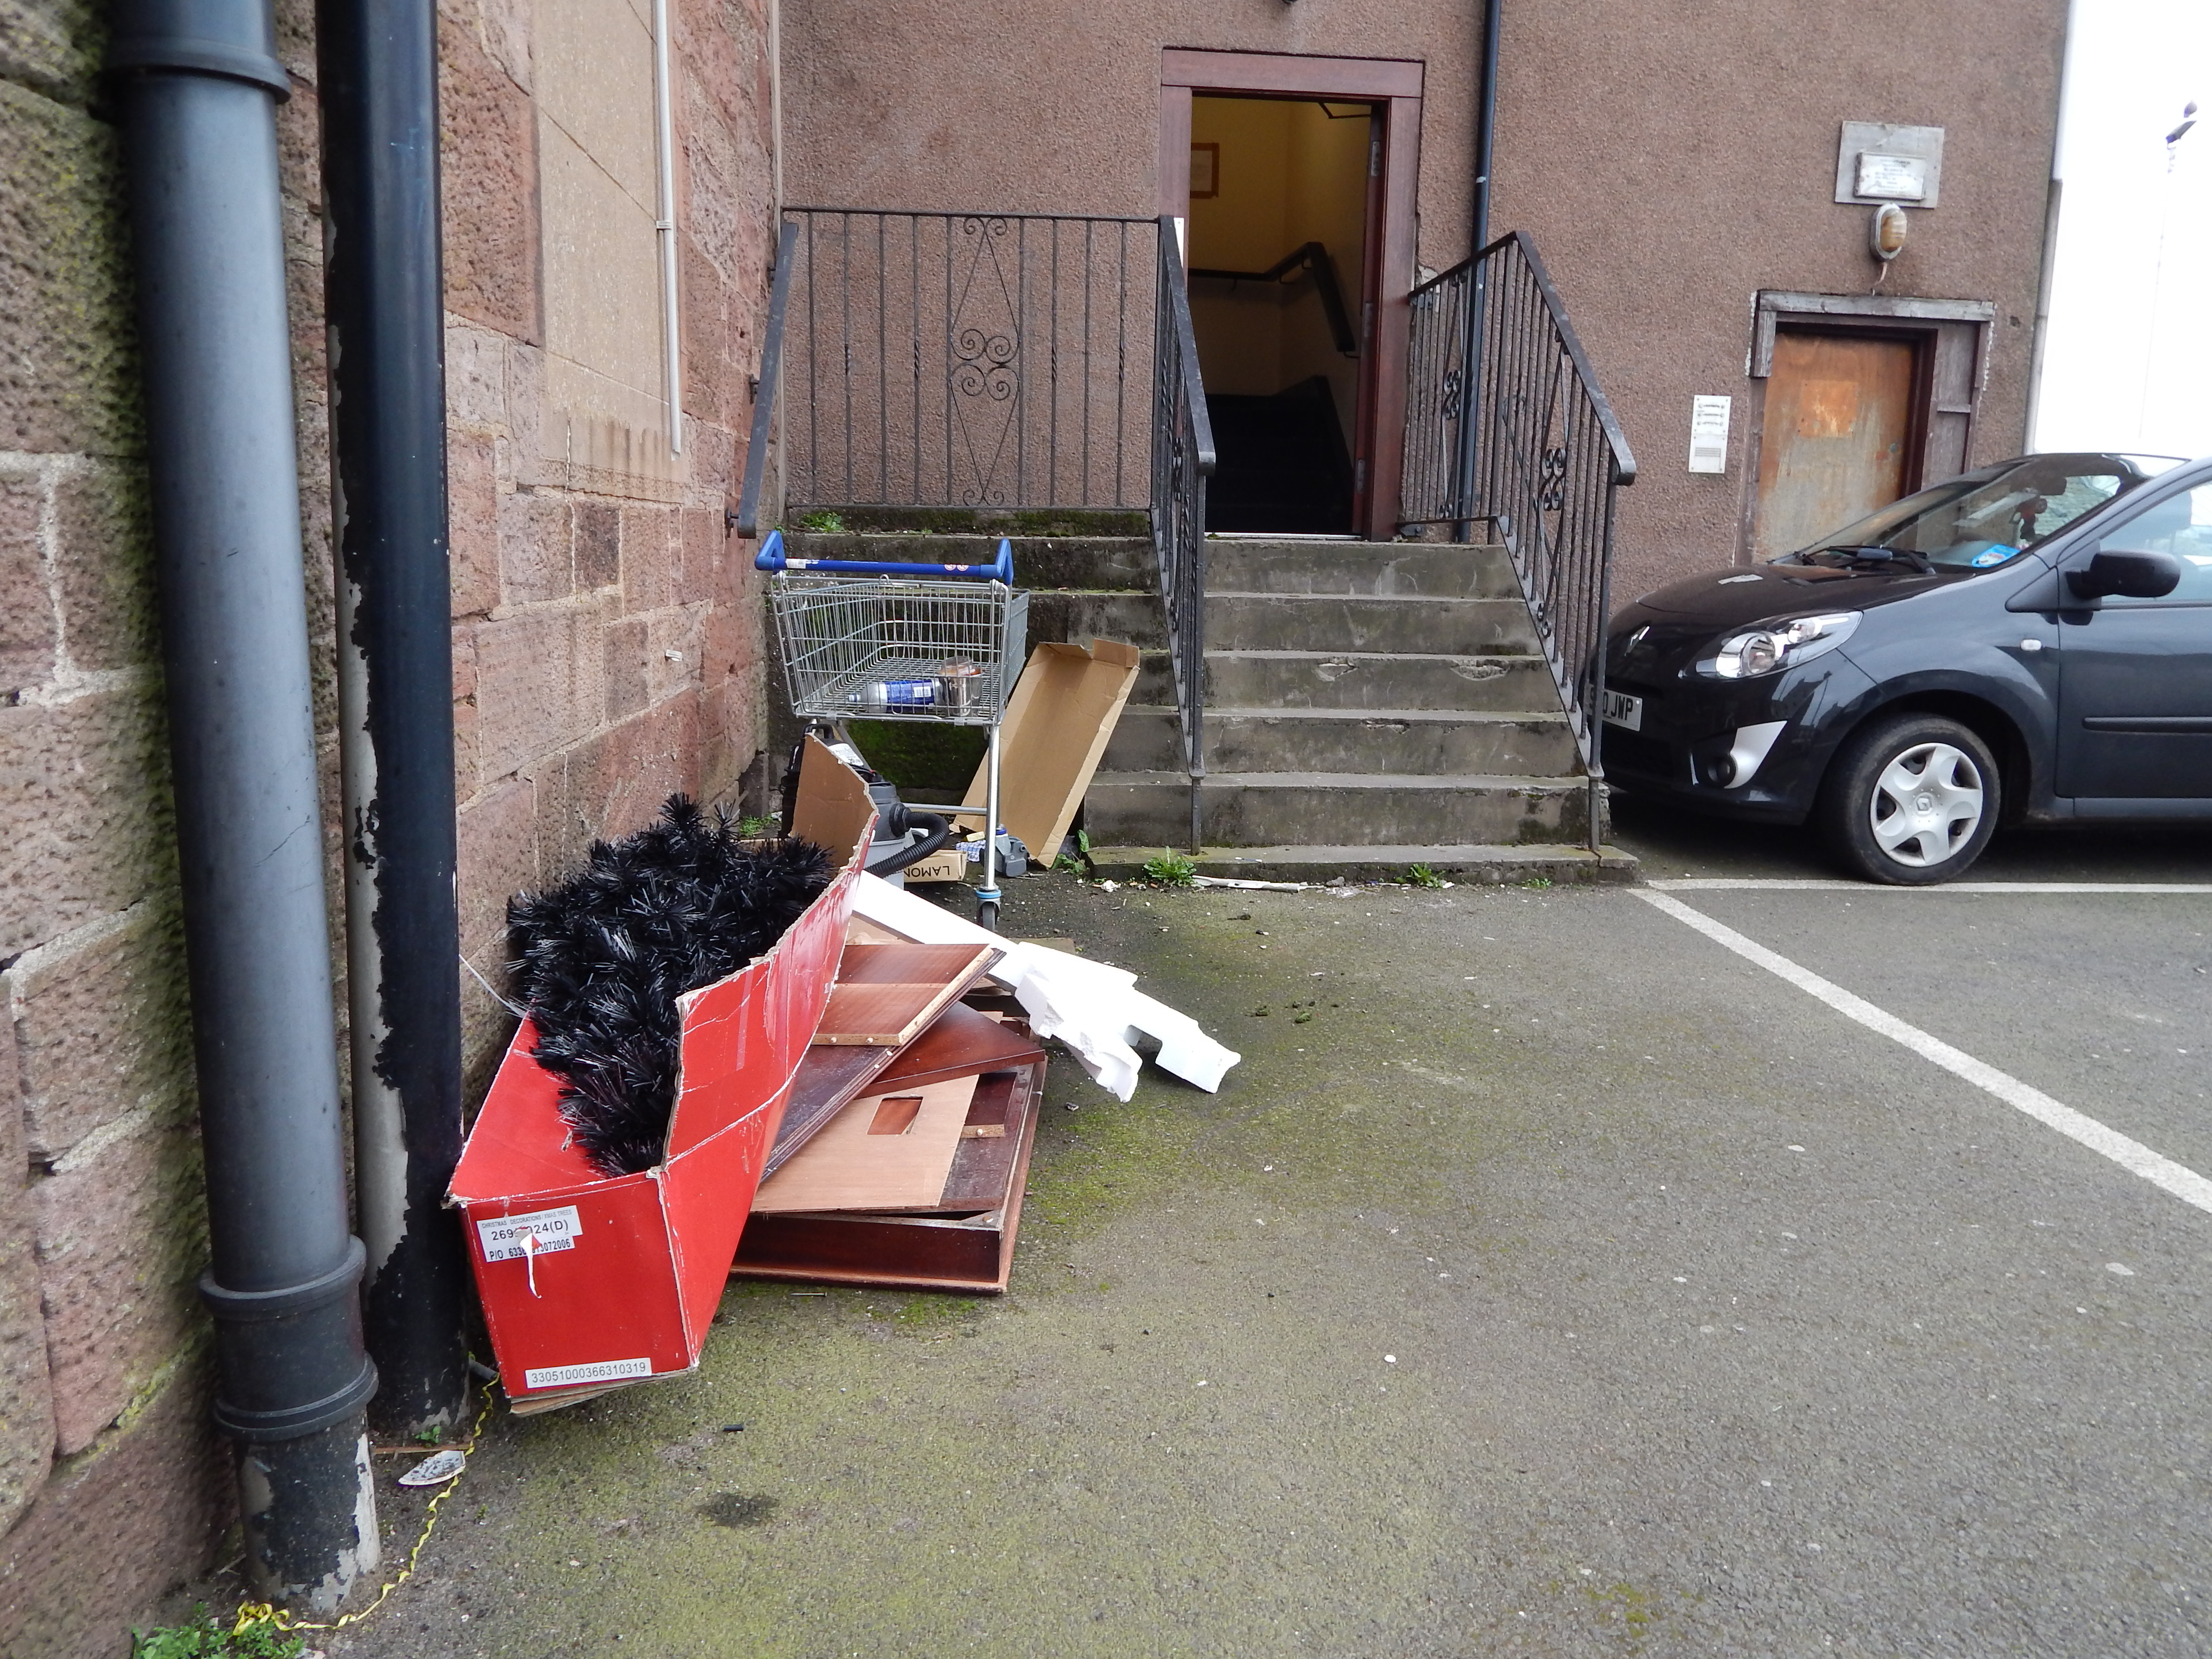 Warning to communities about dumping rubbish in stairwells